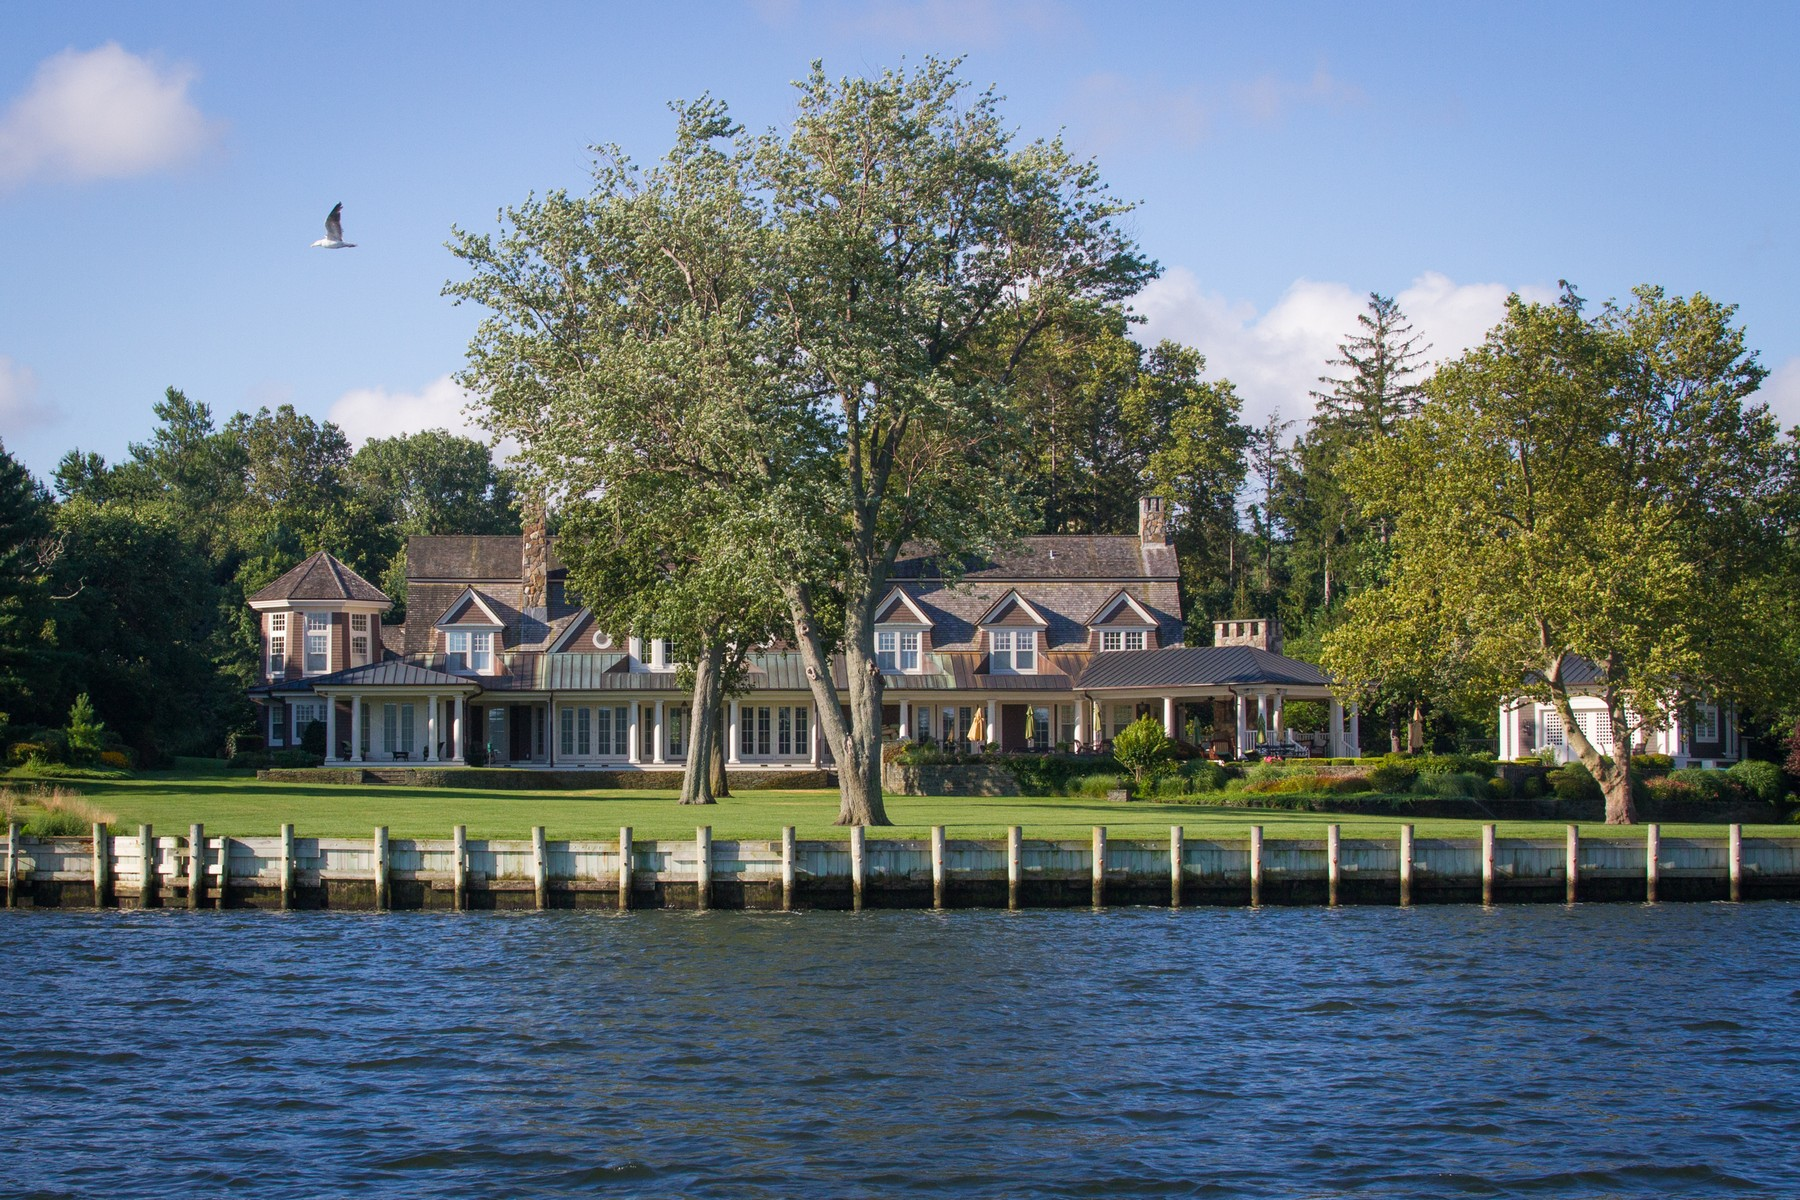 Single Family Home for Sale at Riverblades Estate 74 West River Road Rumson, New Jersey, 07760 United States